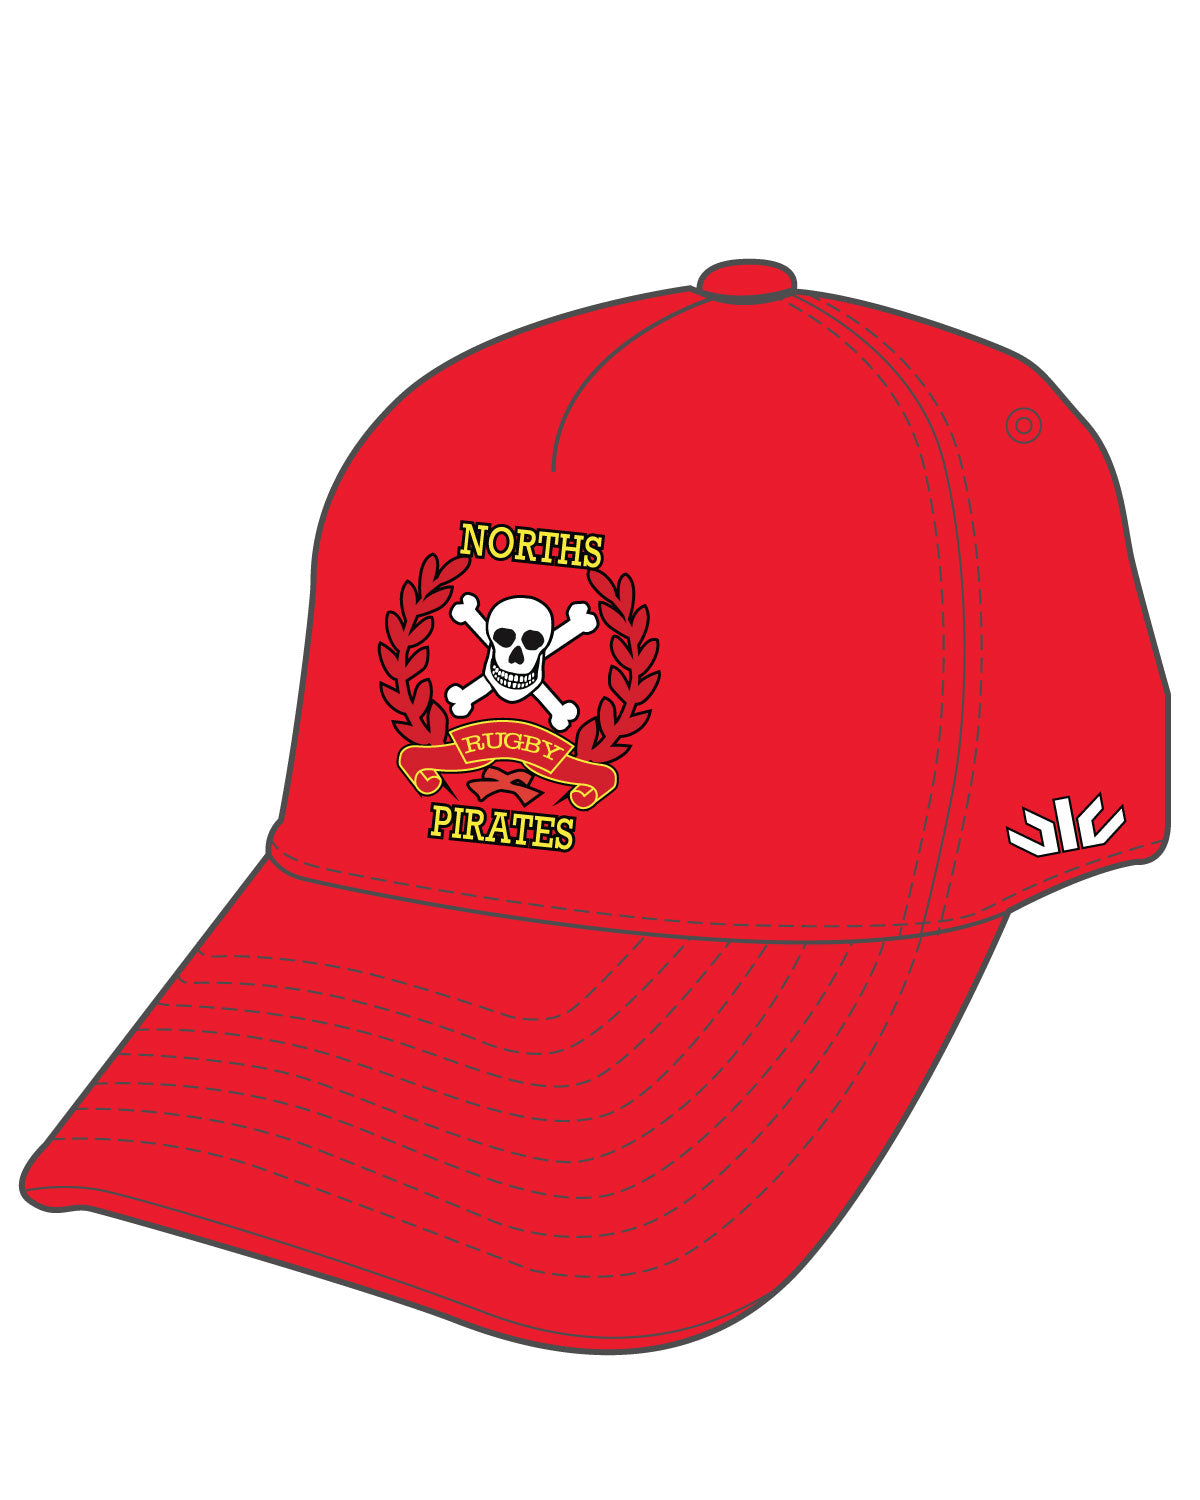 Norths Pirates Sideline Cap Red